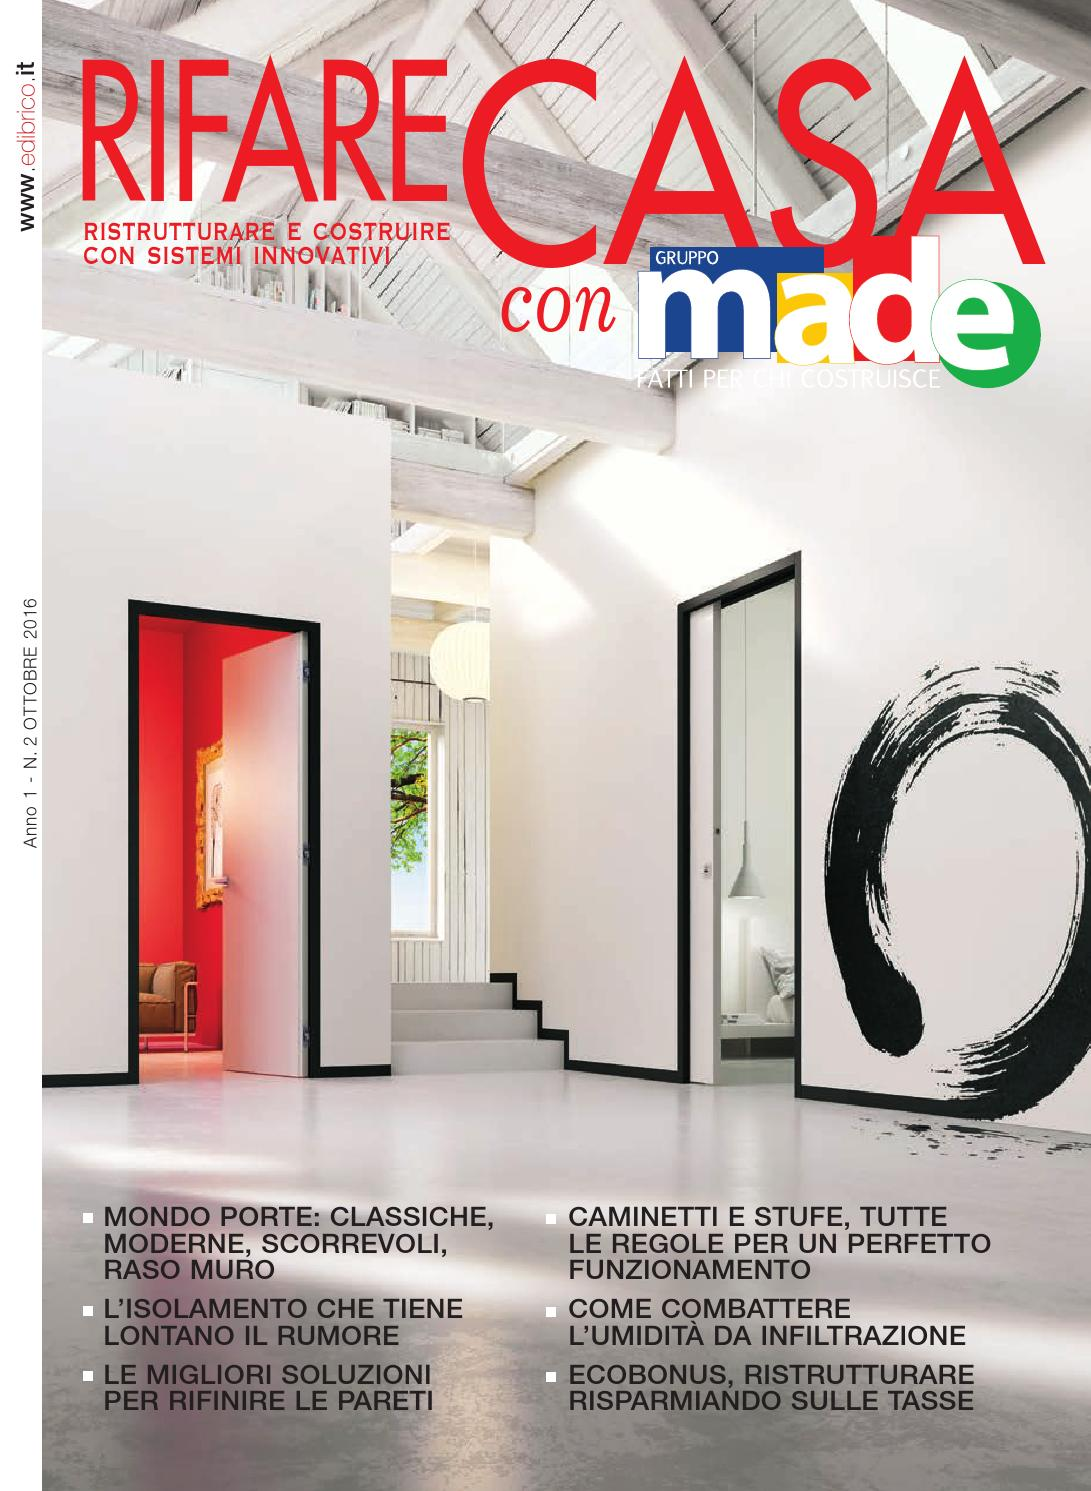 Combattere L Umidità Rifare Con Made 2 By Gruppo Made Issuu